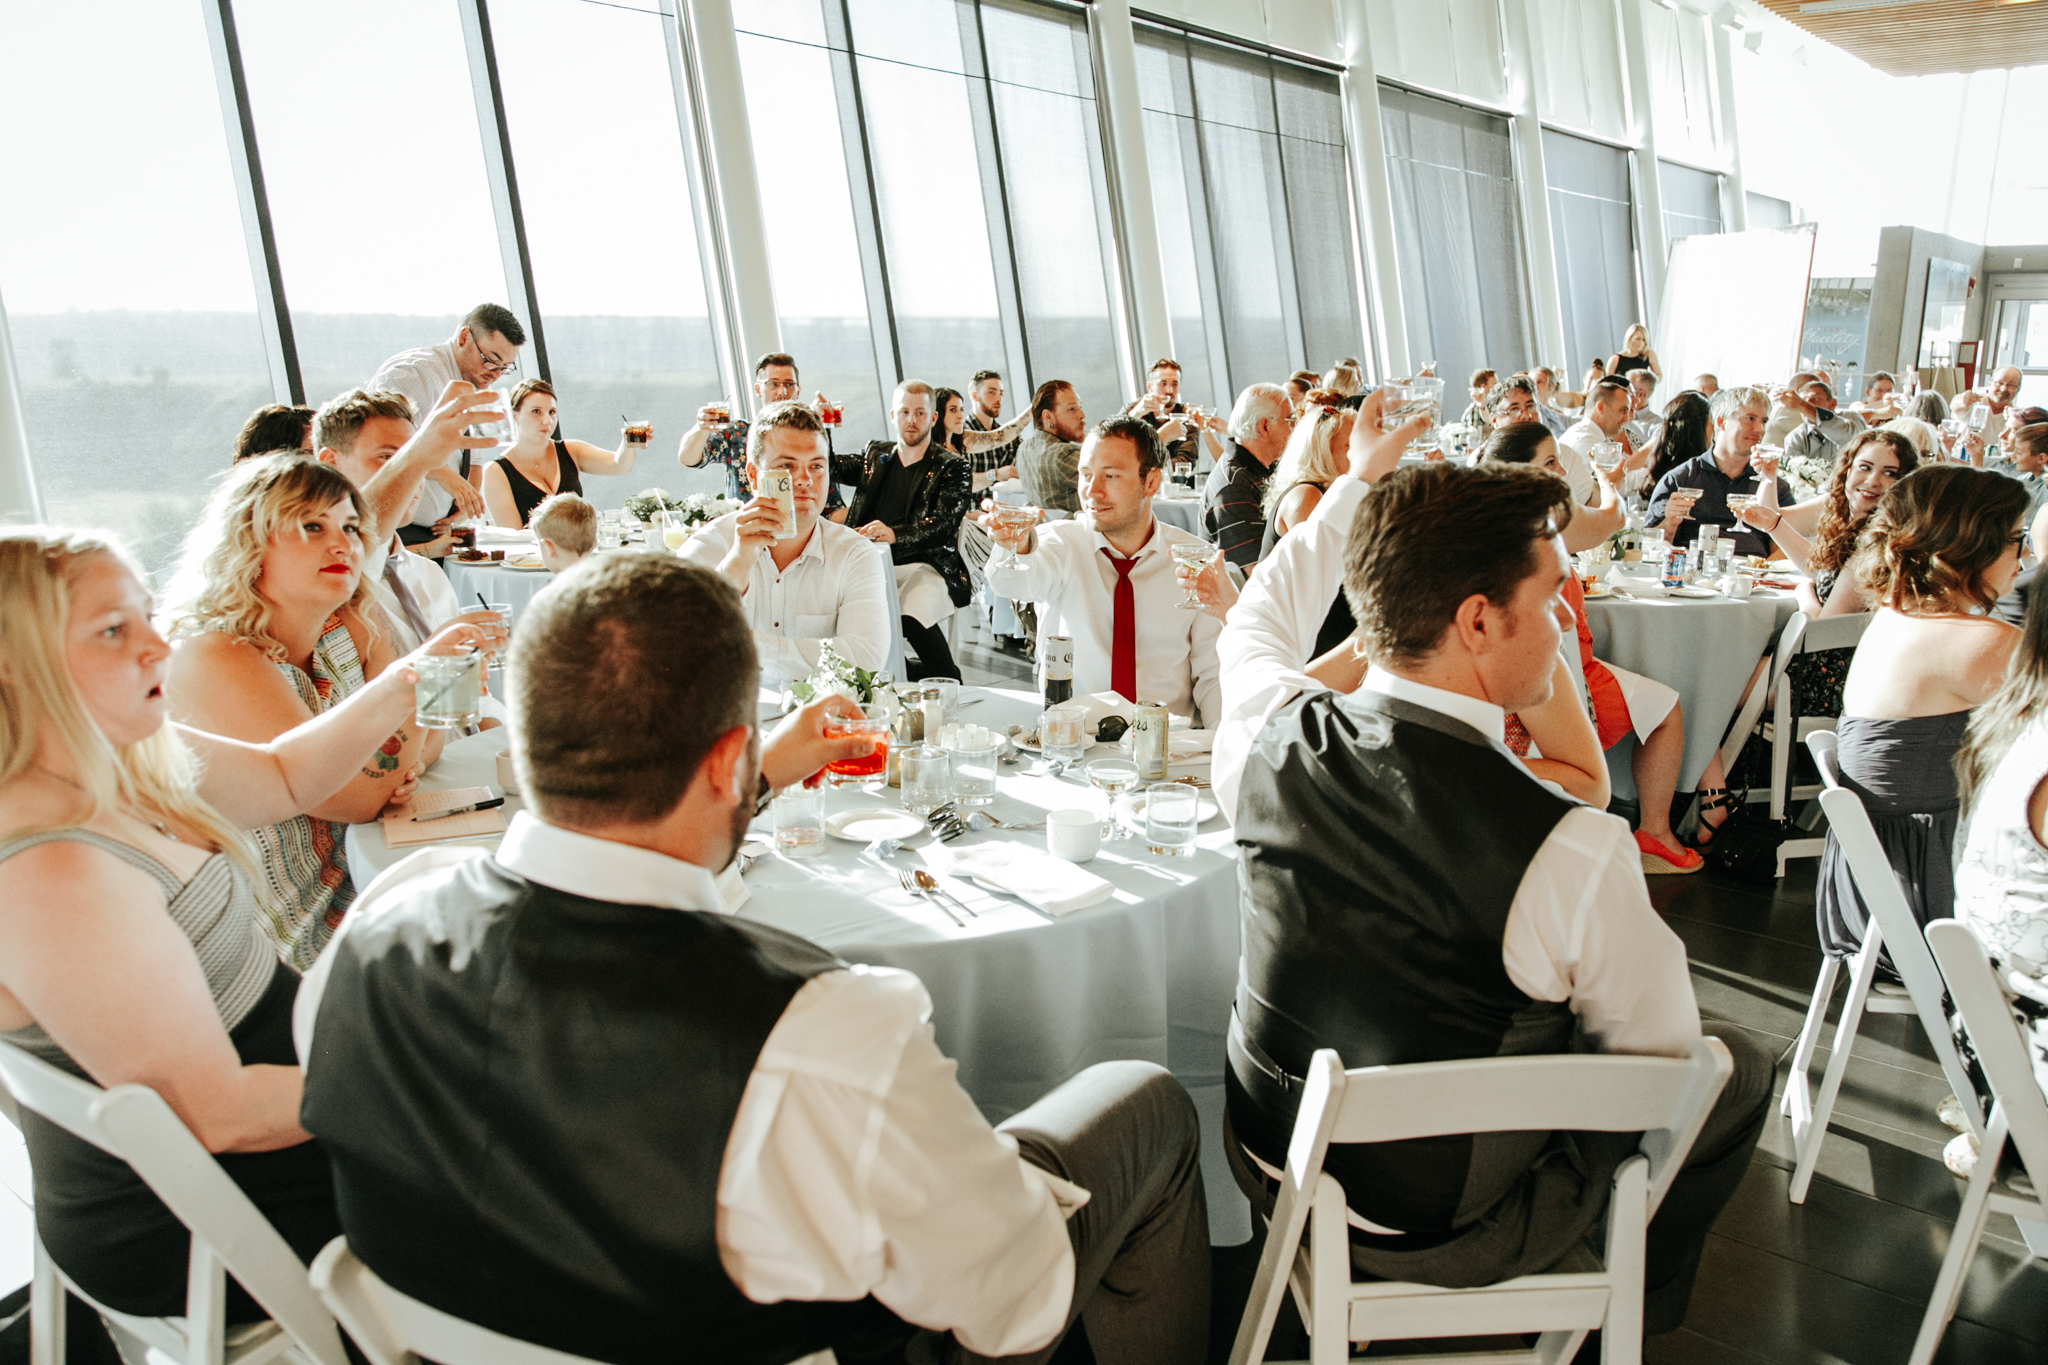 lethbridge-wedding-photographer-love-and-be-loved-photography-trent-danielle-galt-reception-picture-image-photo-185.jpg